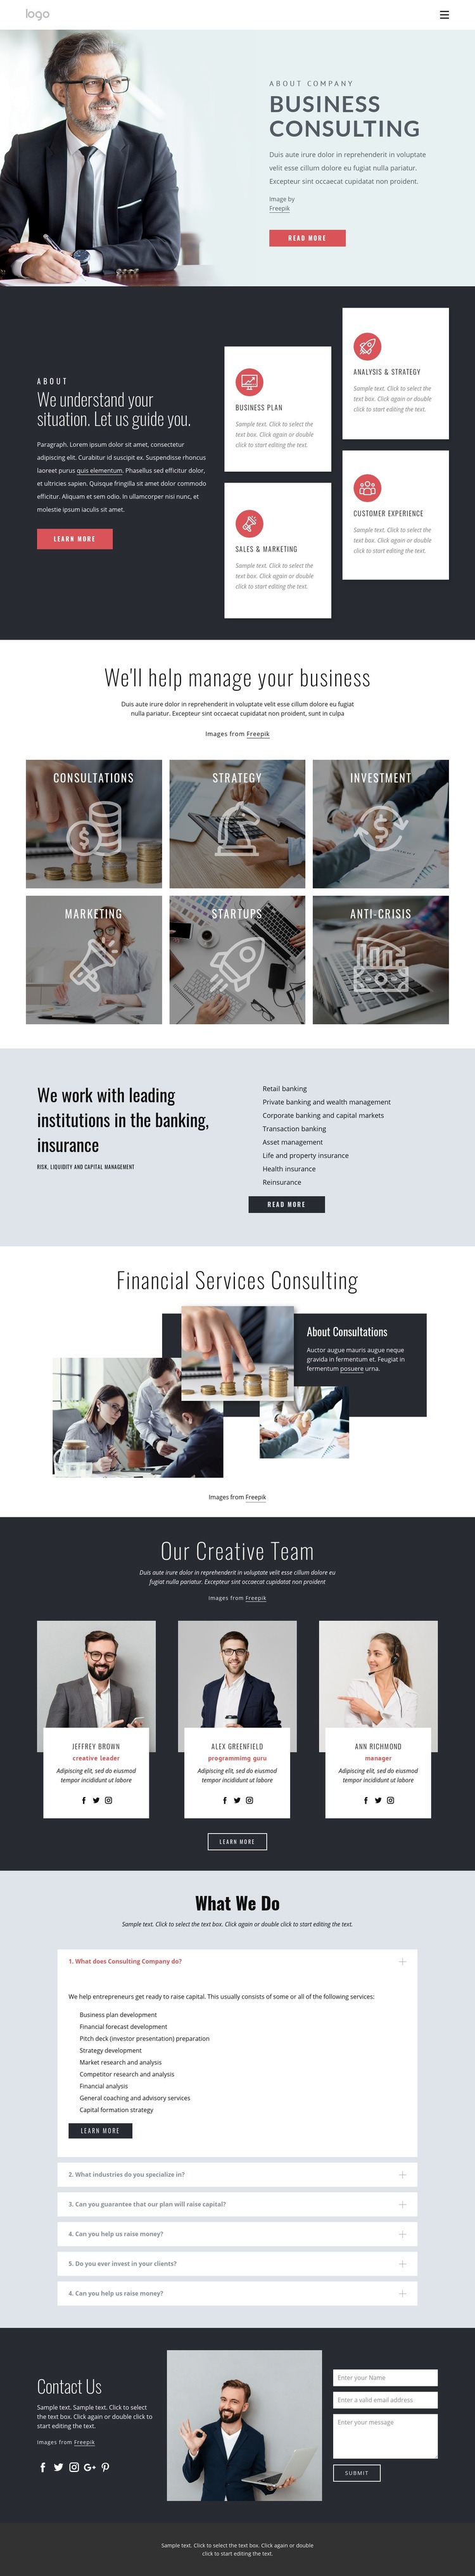 Successful financial strategy Web Page Design